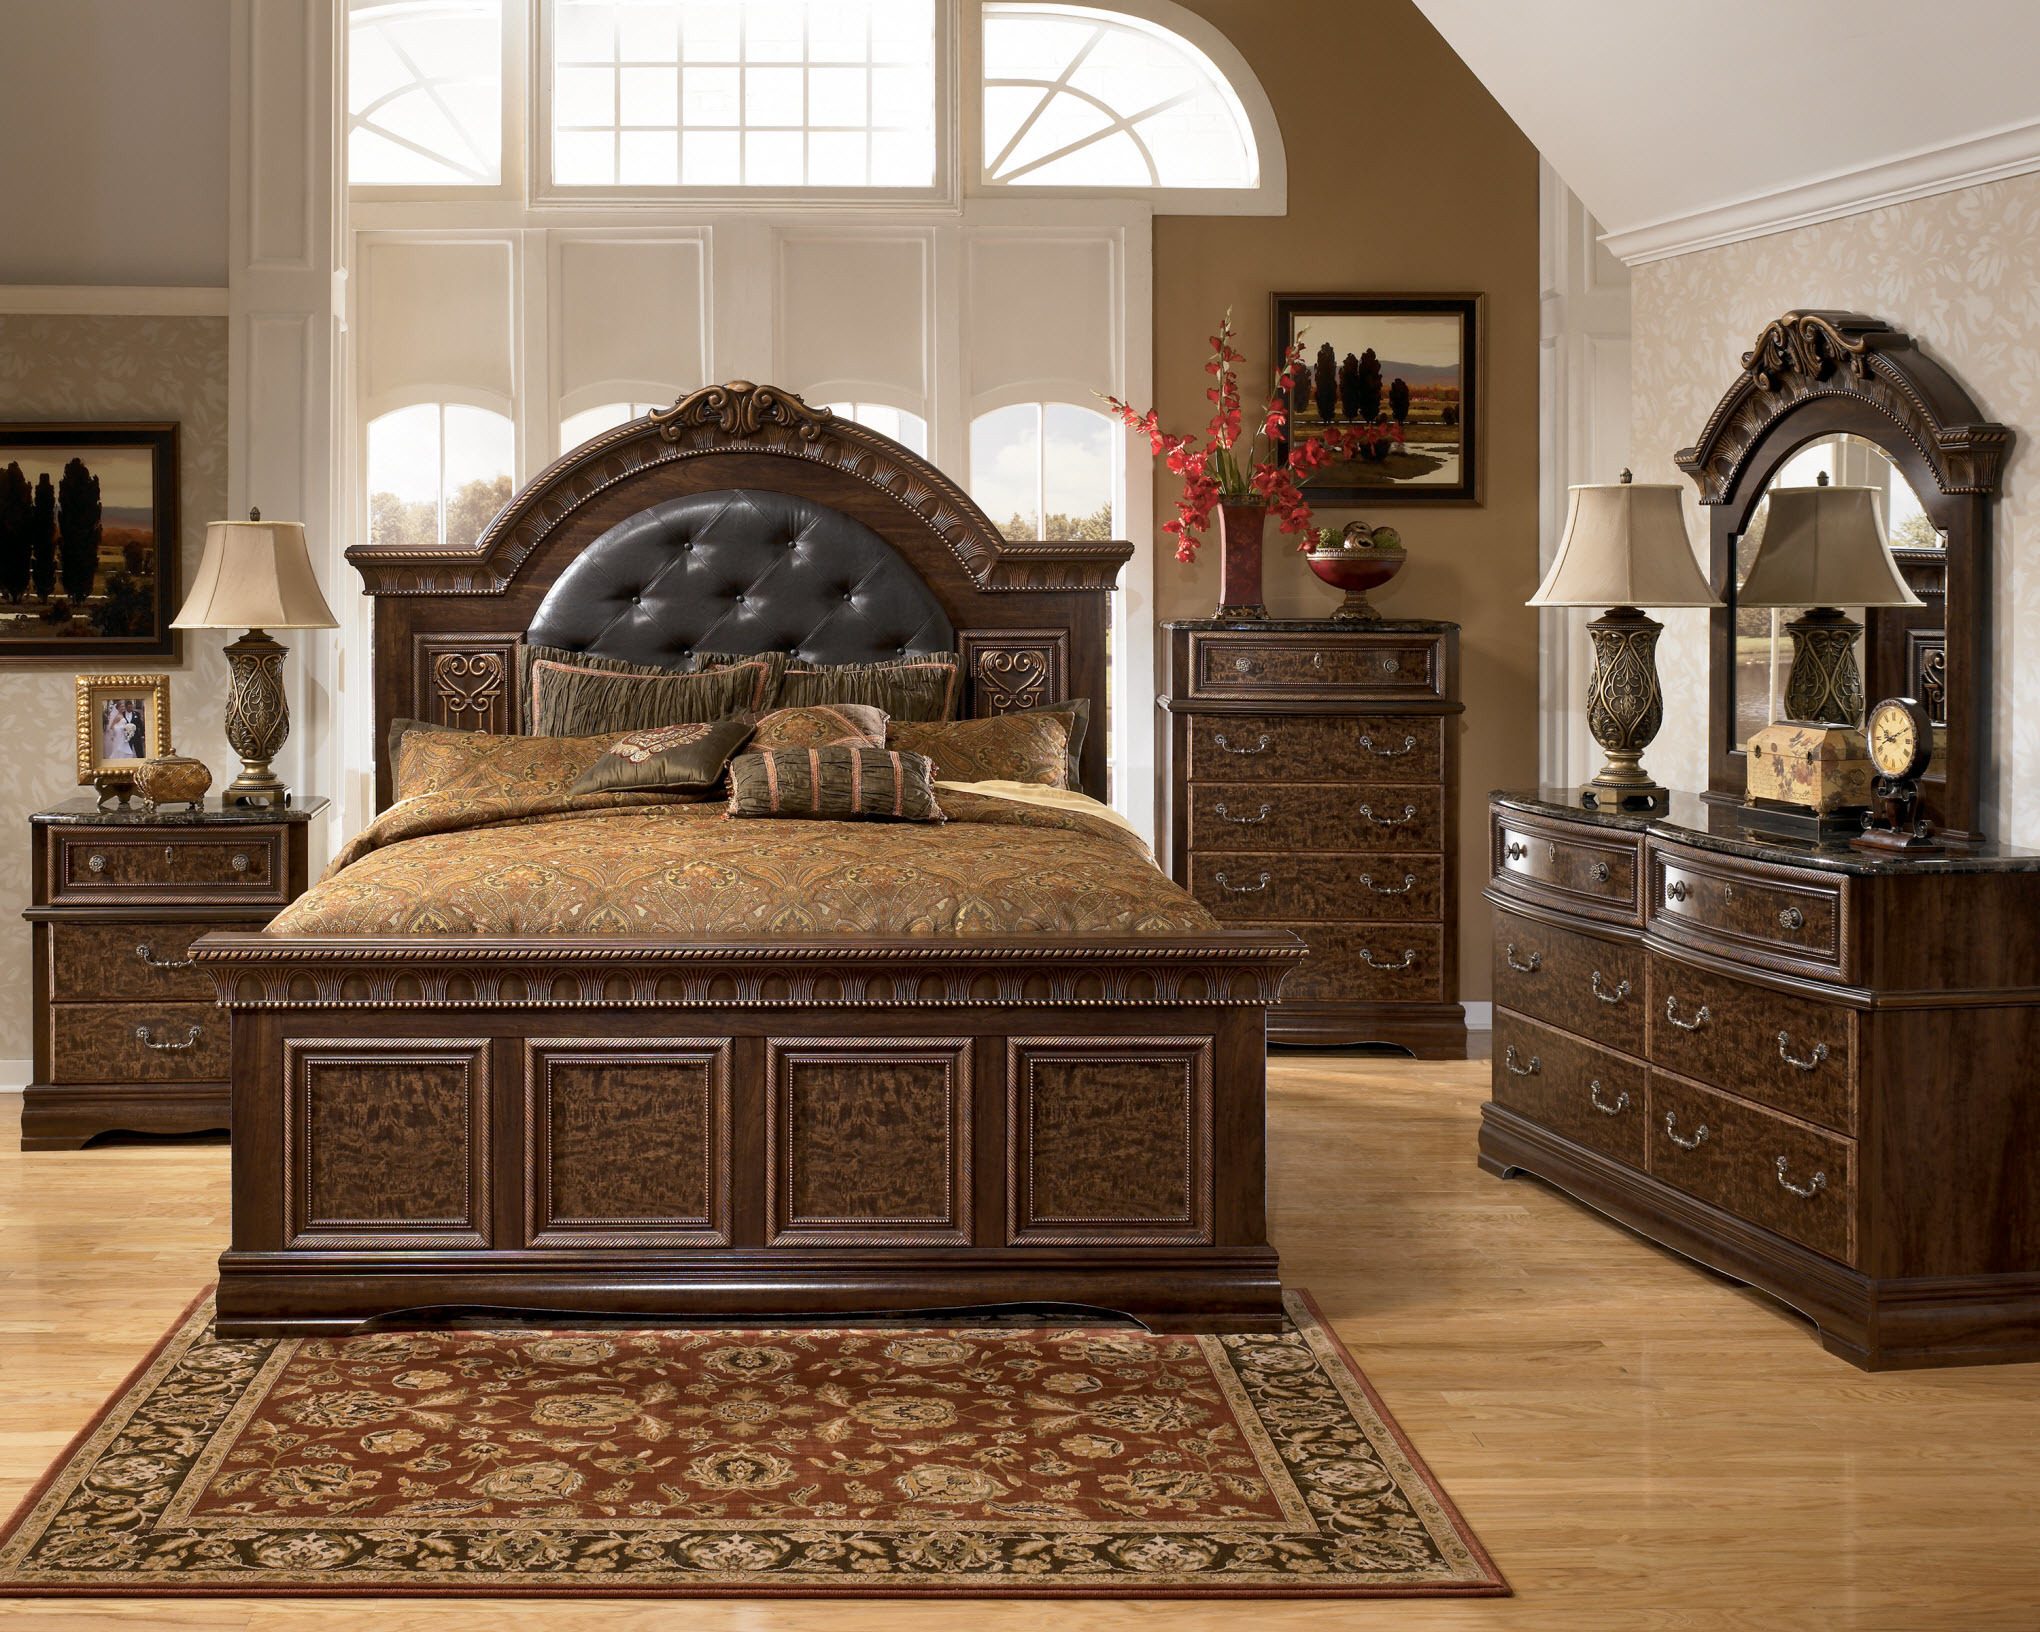 ashley-bedroom-furniture-saleb321-southerland-shire-bedroom-set-by-signature-design-by-ashley-eripkz3e.jpg